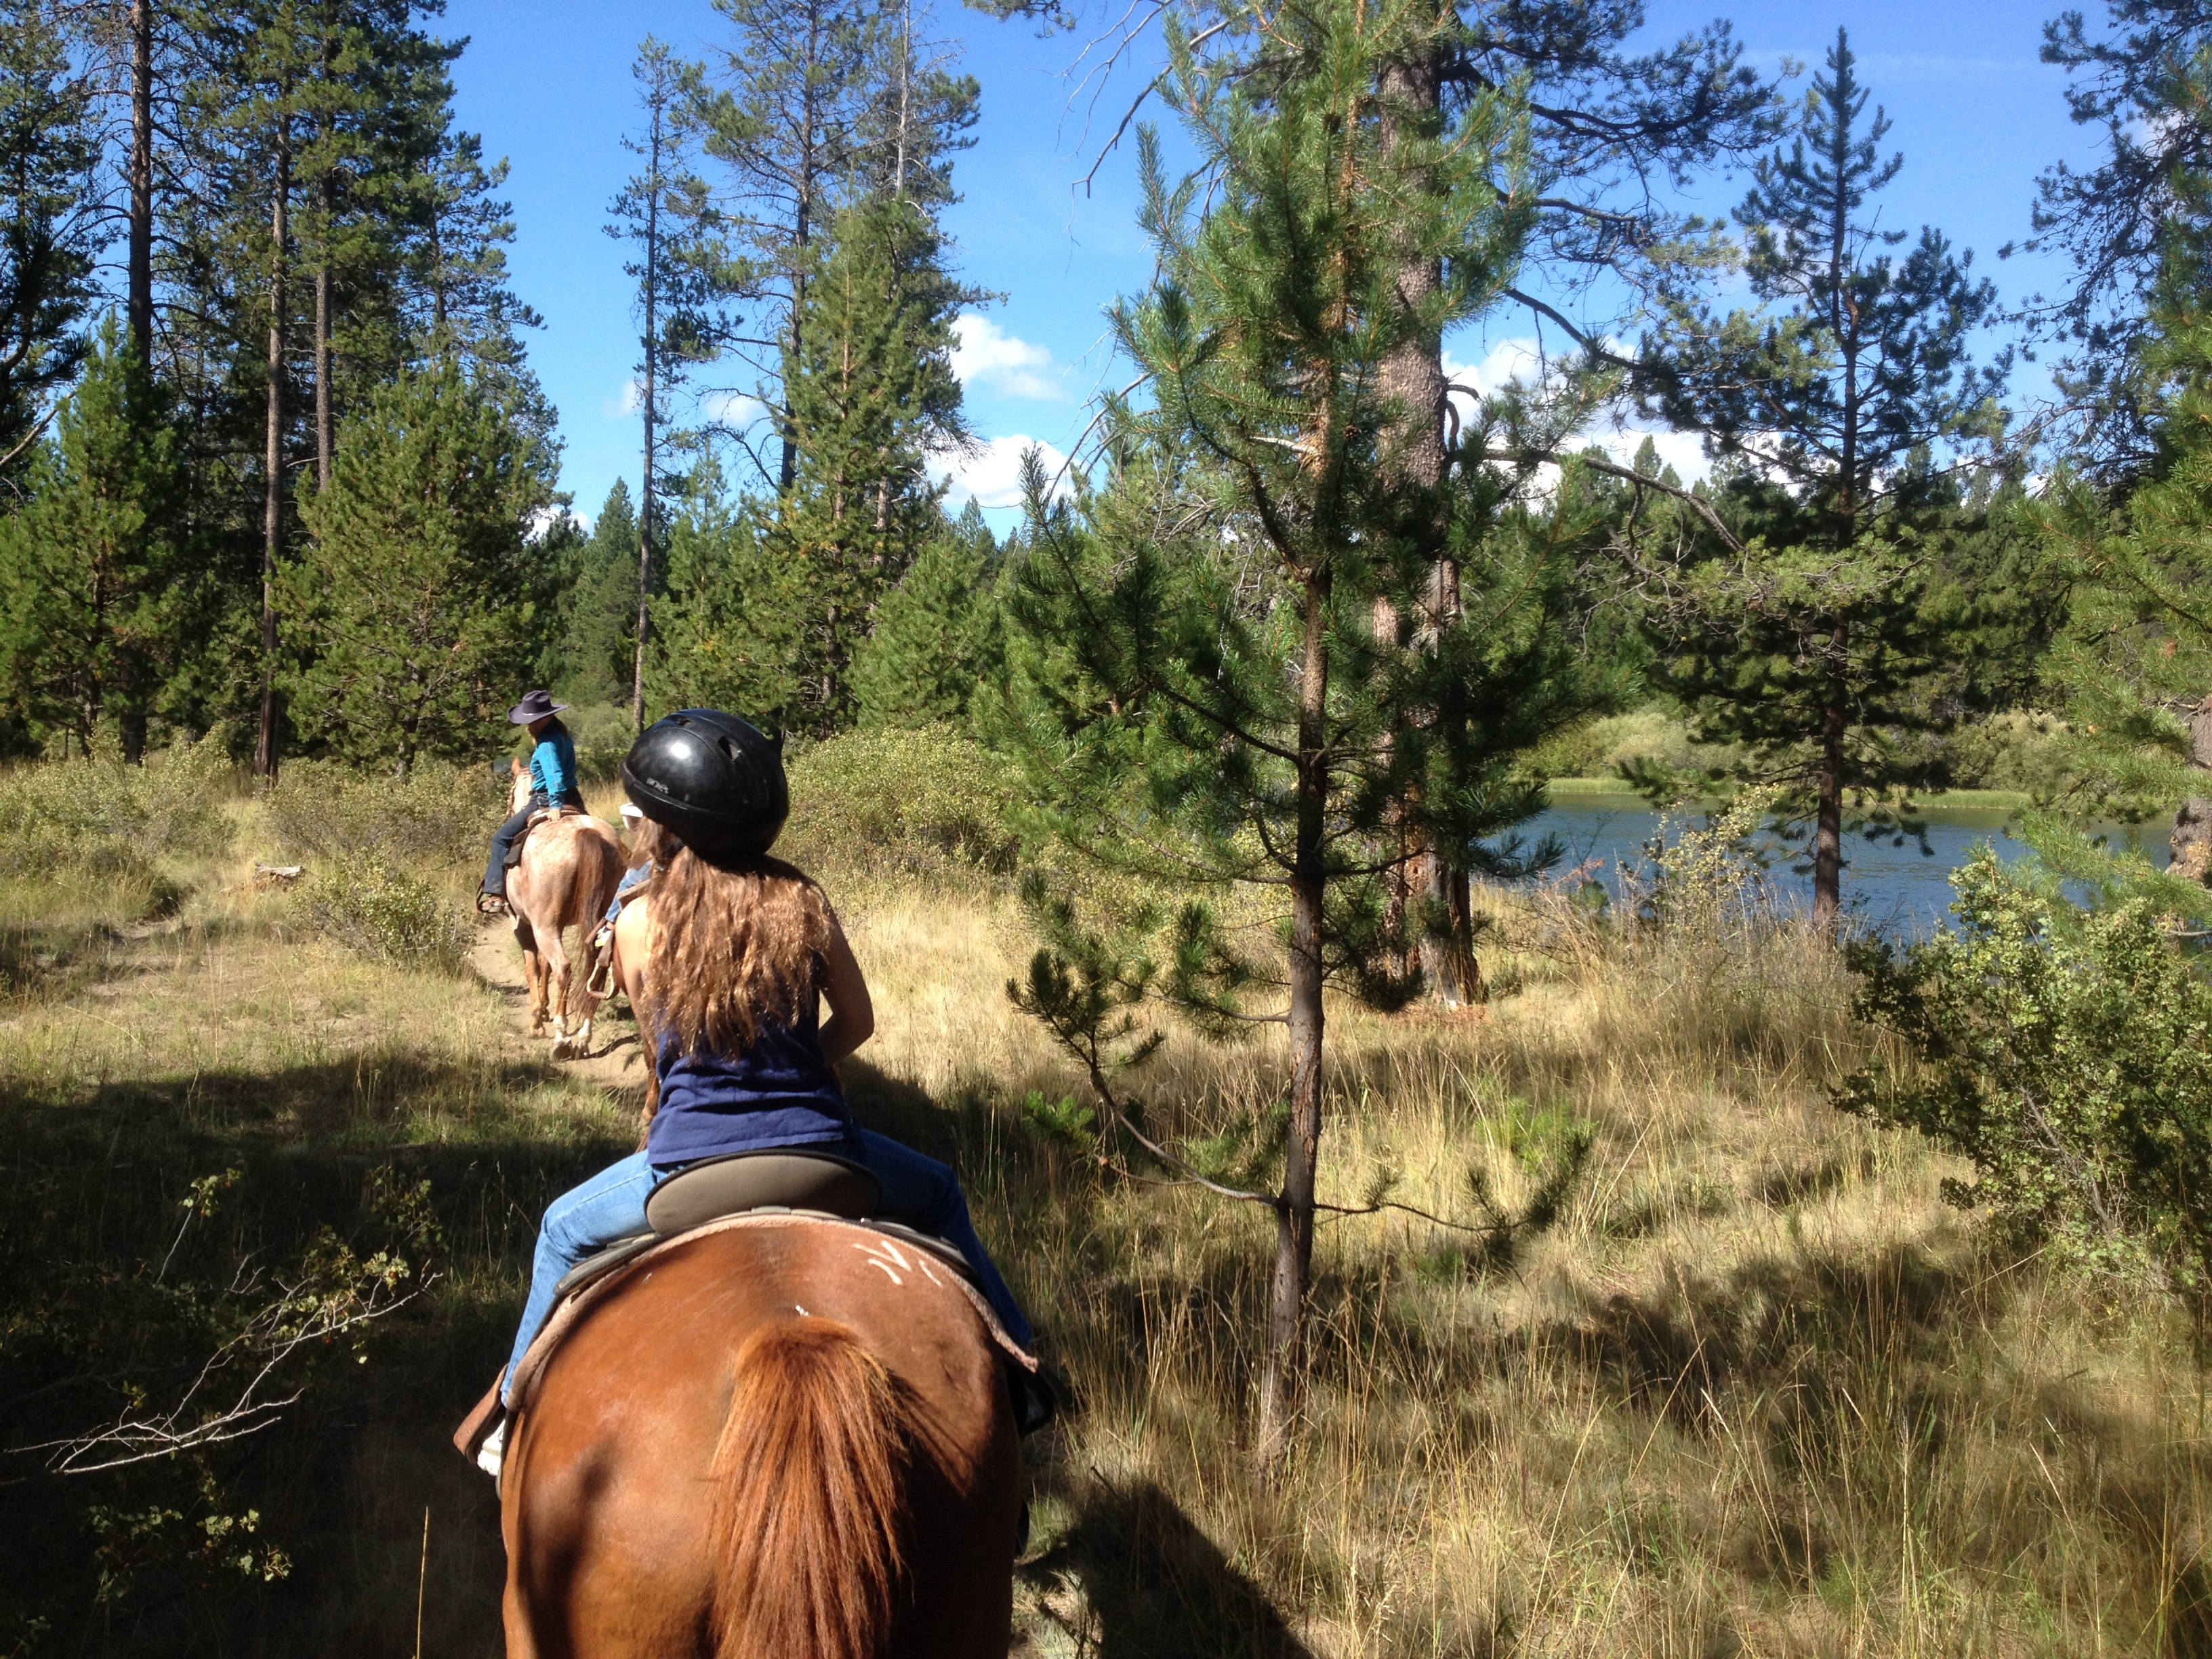 Horseback riding in Sunriver